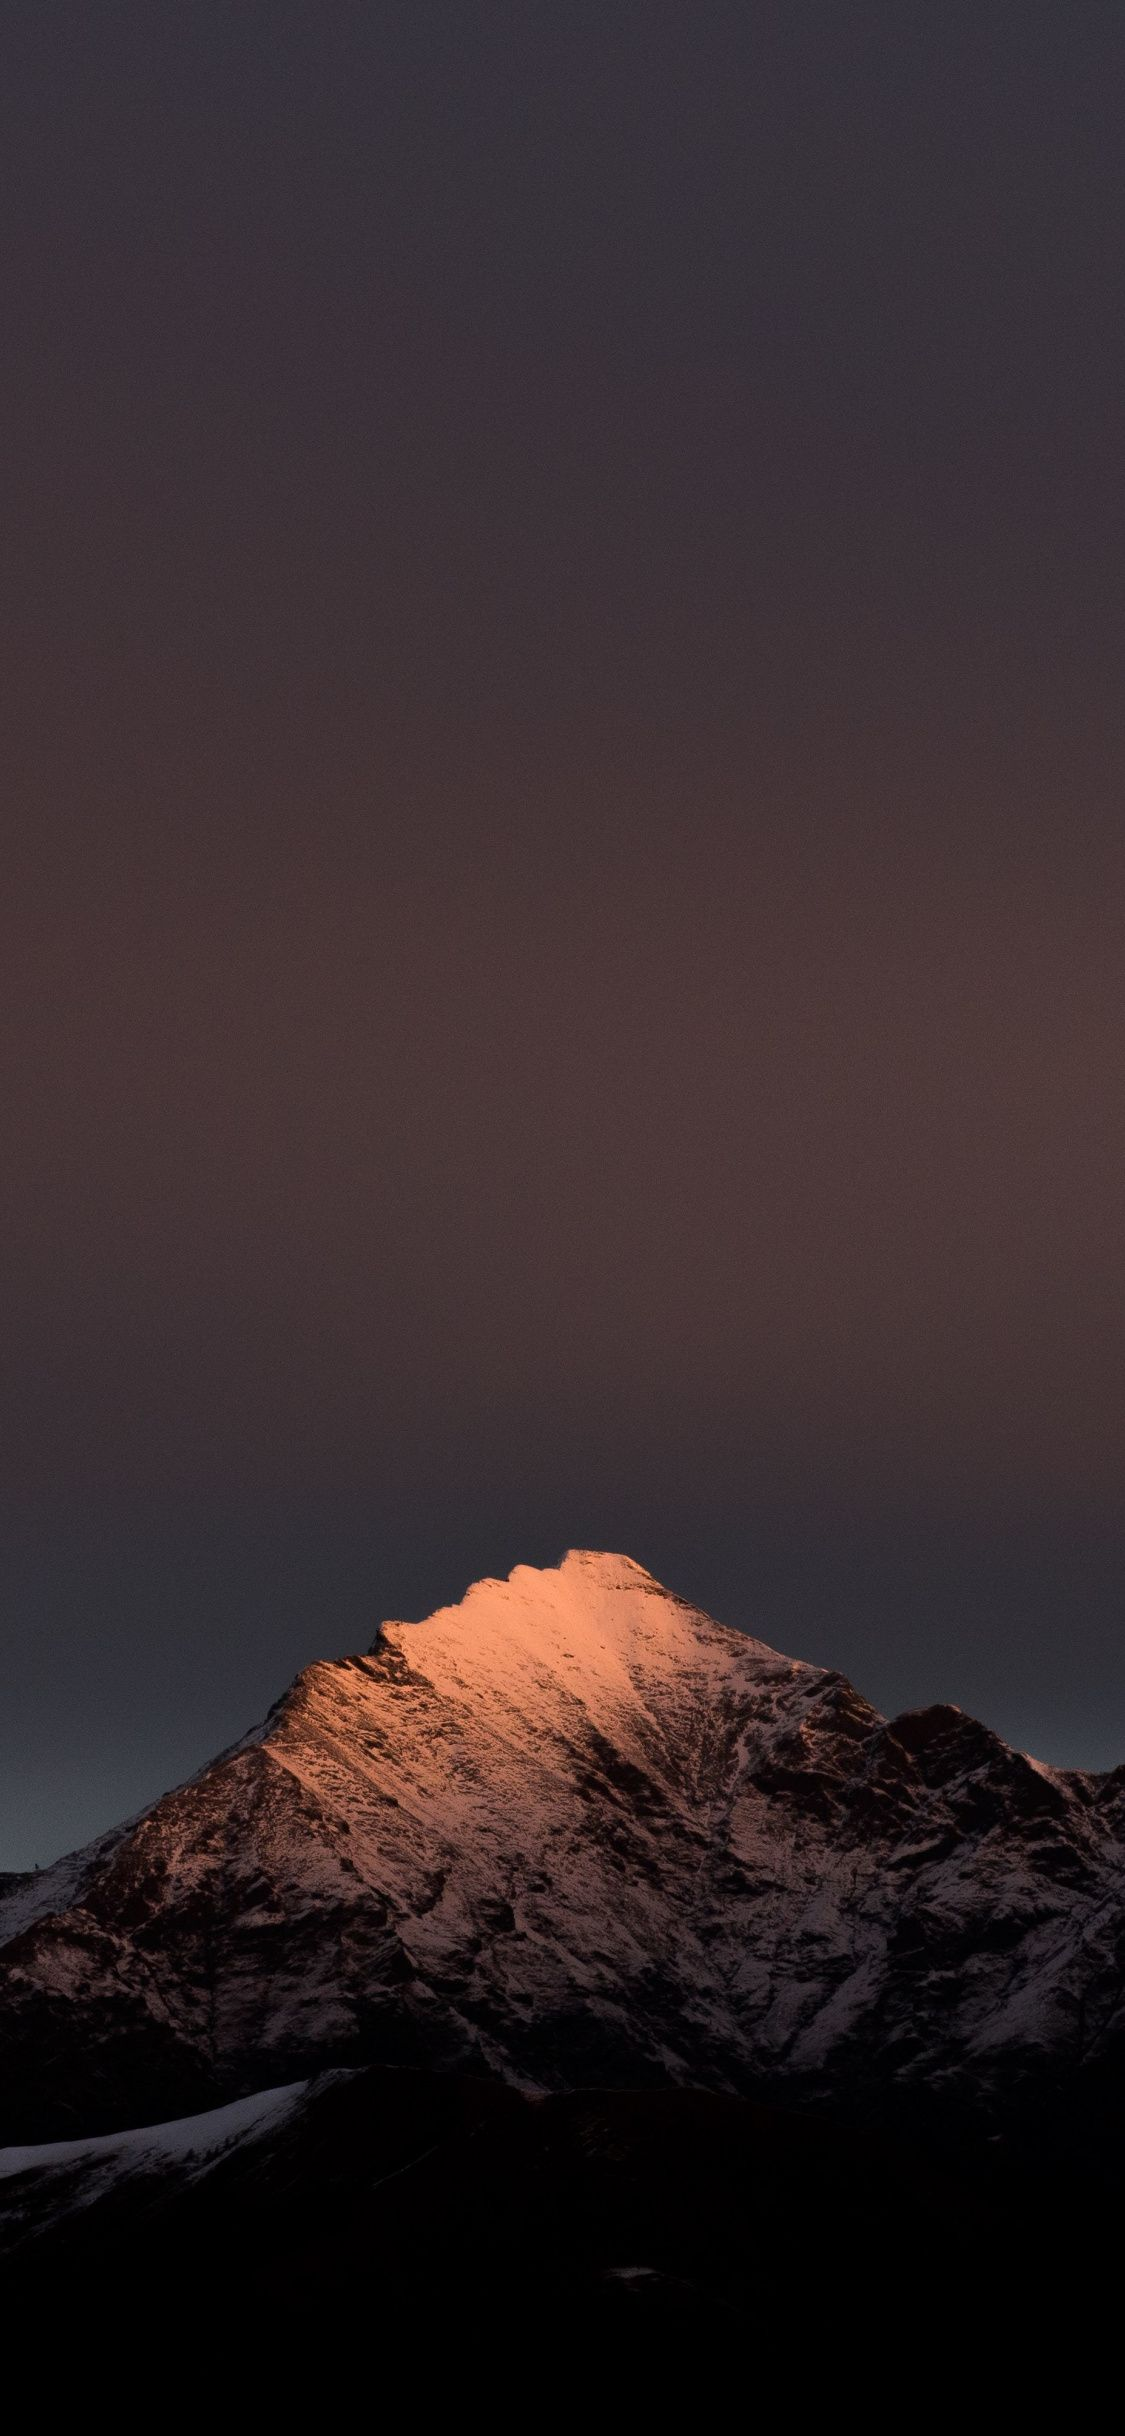 Evening Clean Sky Mountains Peak Nature 1125x2436